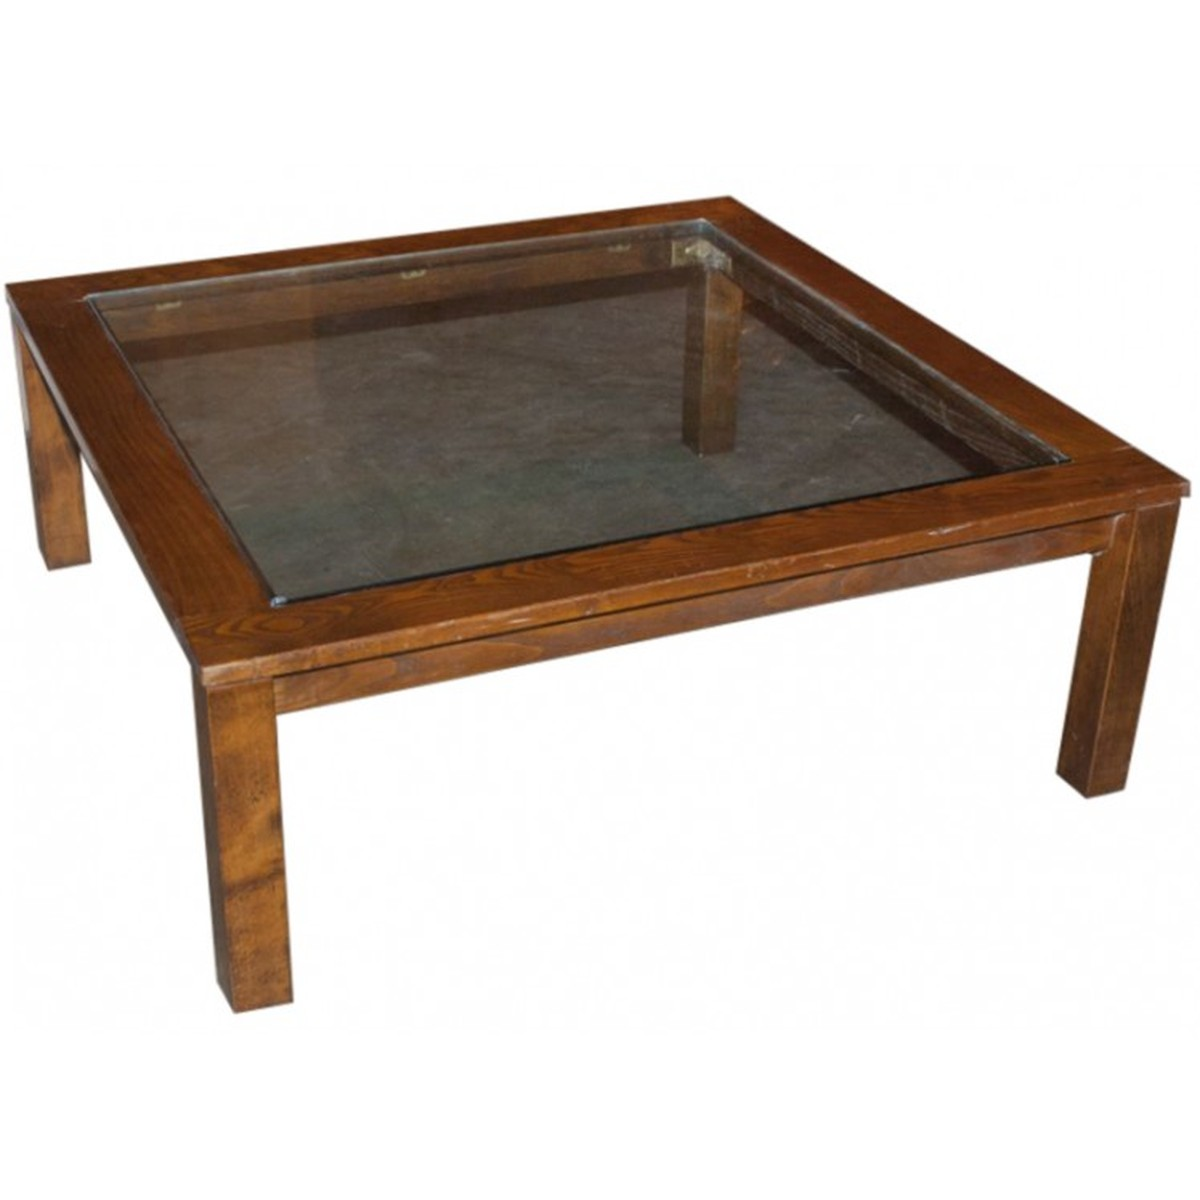 Secondhand hotel furniture lounge and bar large square for Big glass coffee table